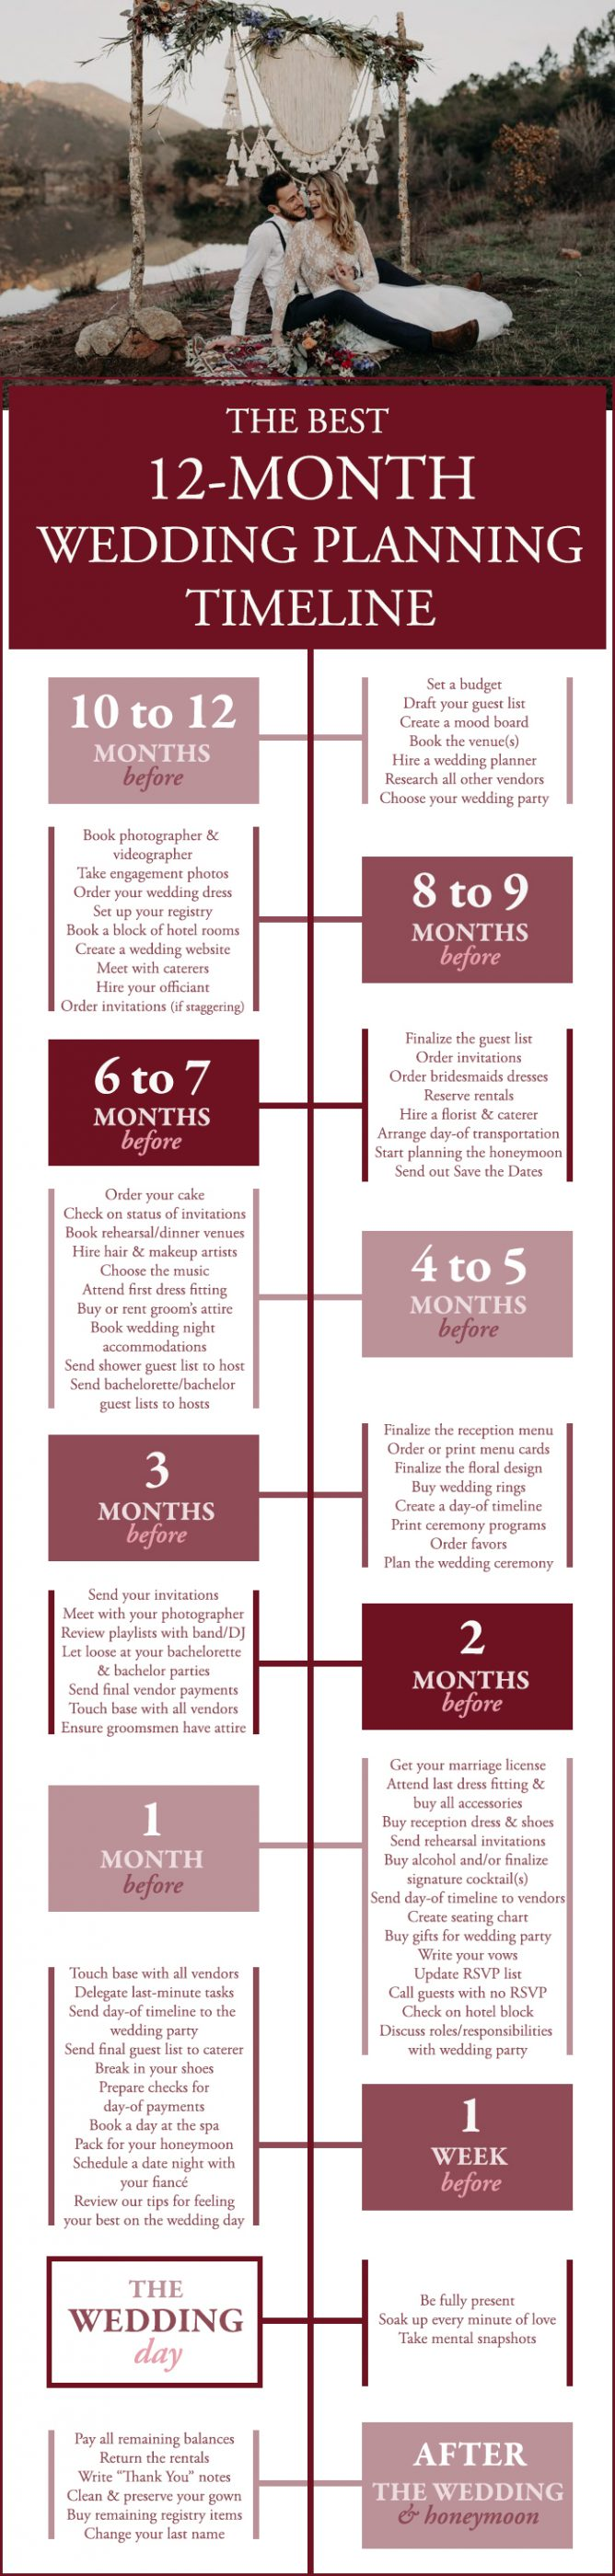 Pin This 12 Month Wedding Planning Timeline Now Even Though You Might Be Ready To Dive Into The Deep End Of We Highly Recommend Take Just A